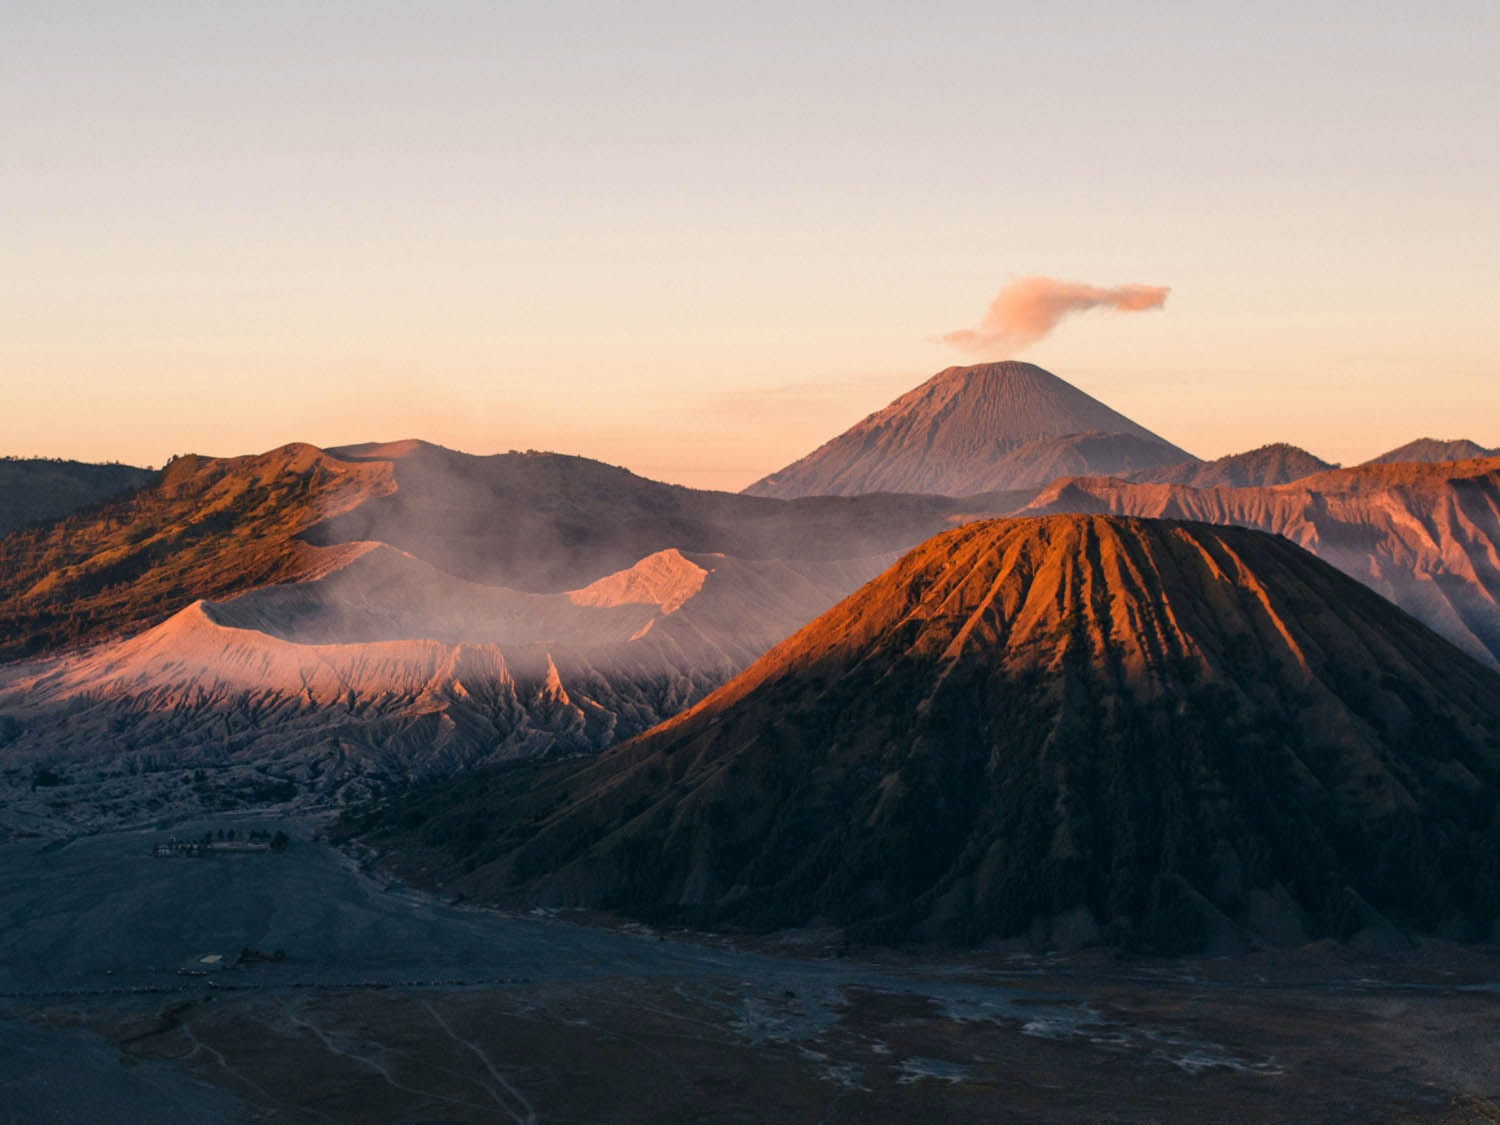 Sunrise at Mount Bromo, Indonesia © The World Ahead of Us